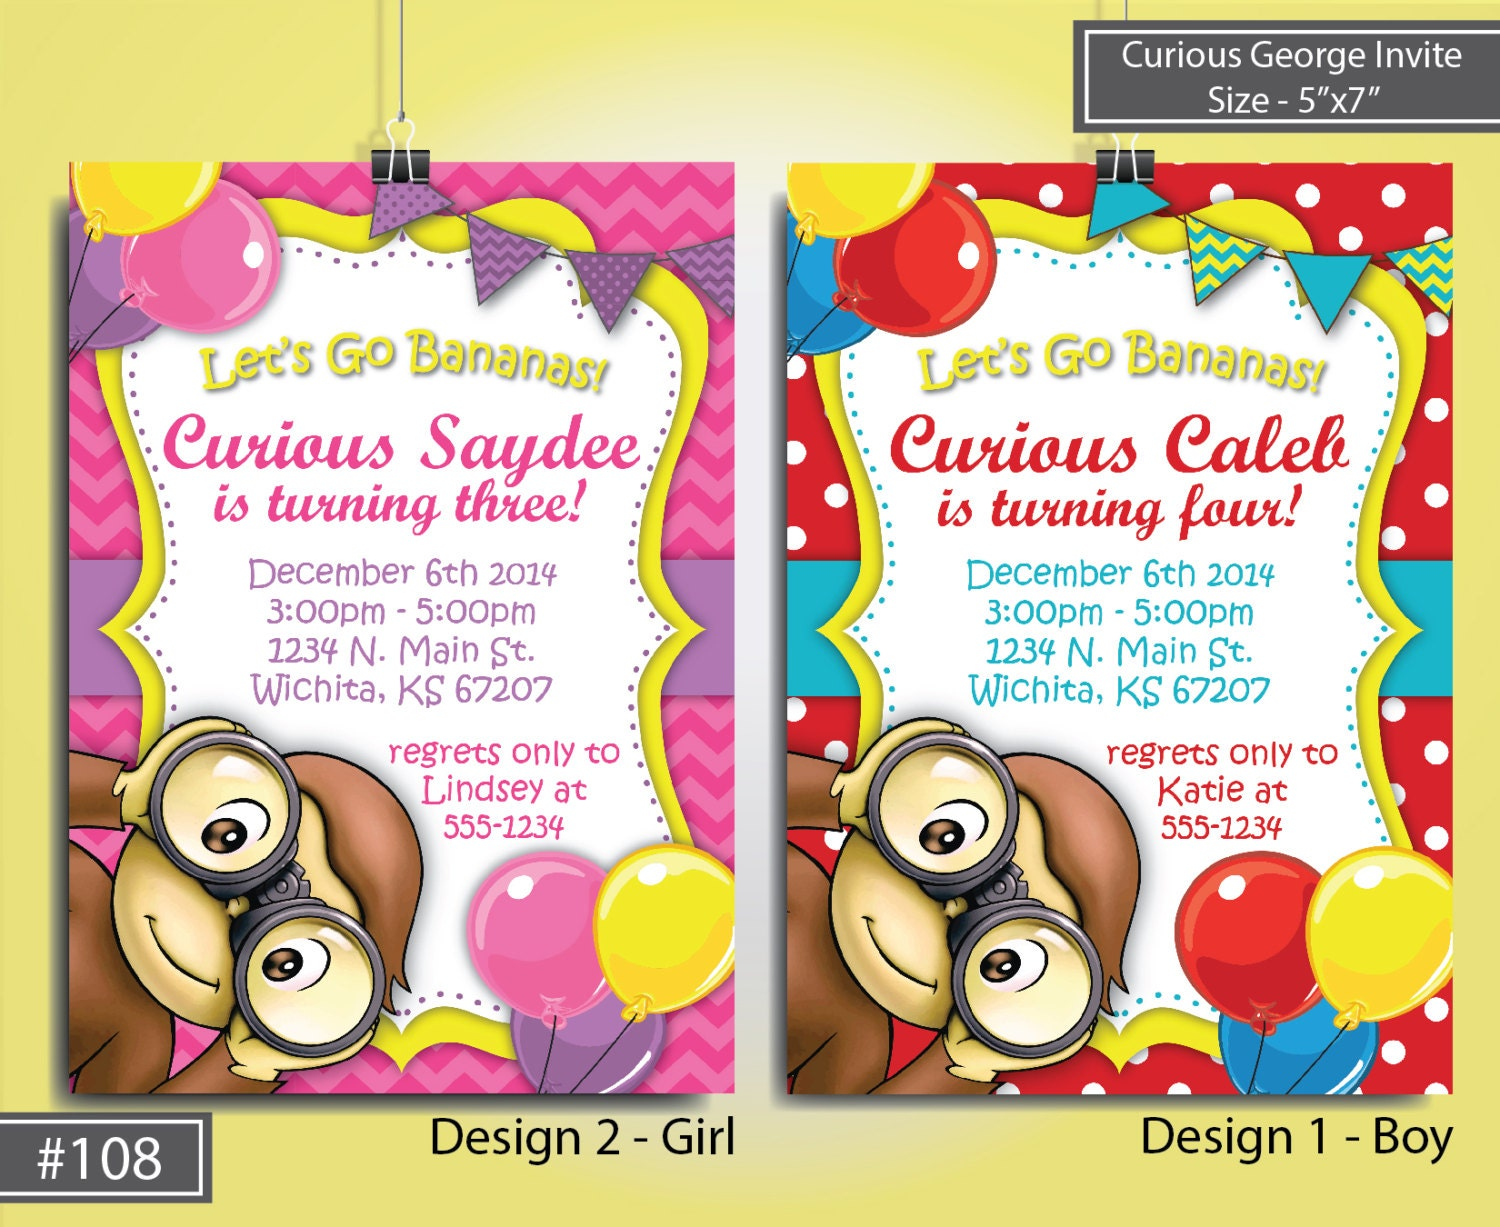 Curious George Invitation Template – Curious George Birthday Cards